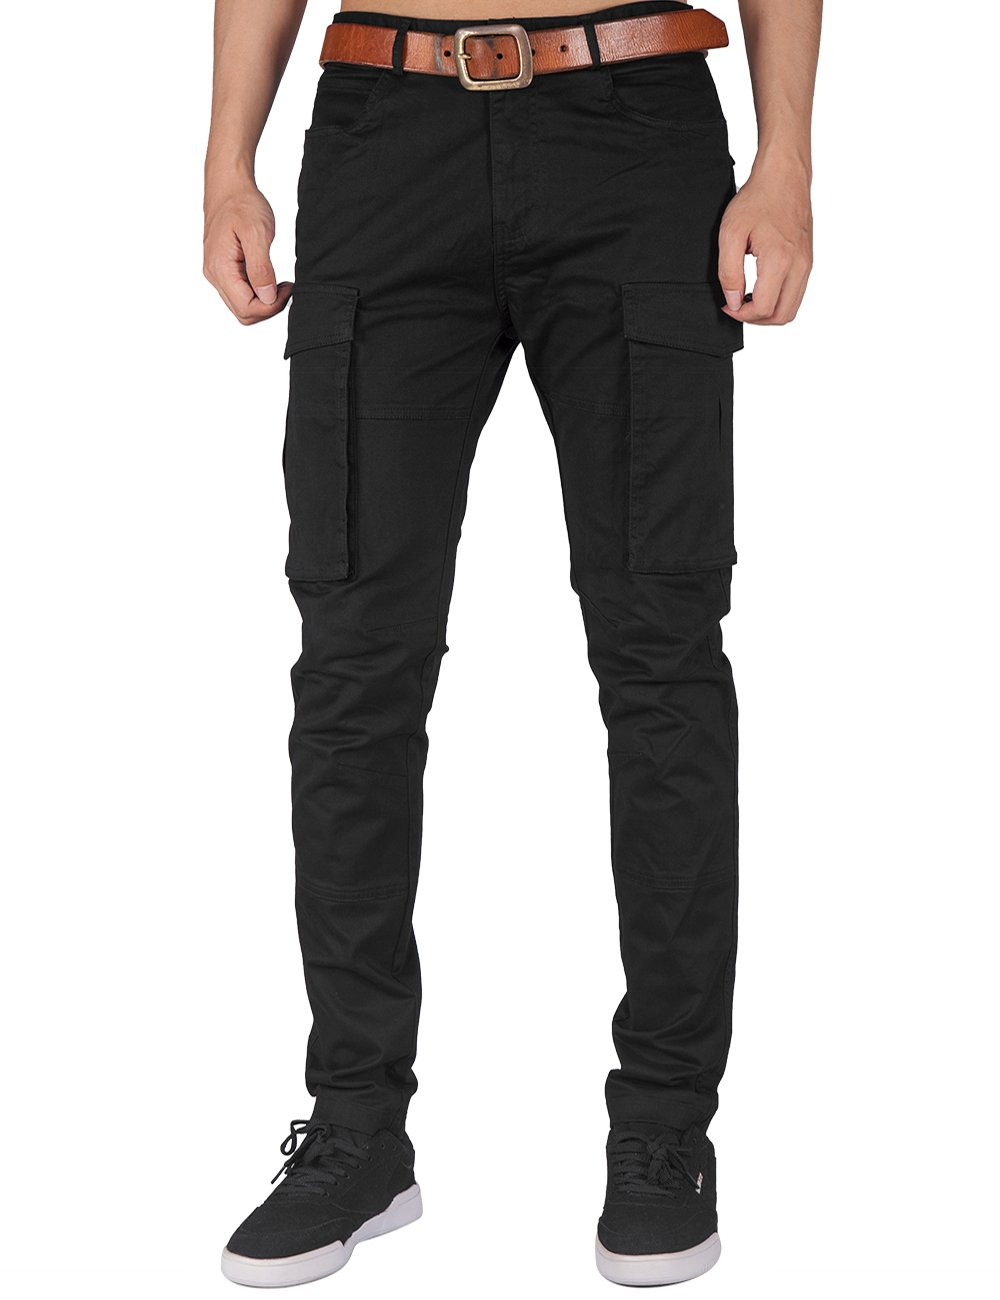 ITALY MORN Men Chino Cargo Jogger Pants Casual Twill Khakis Slim fit Black (S, Black) by ITALY MORN (Image #1)